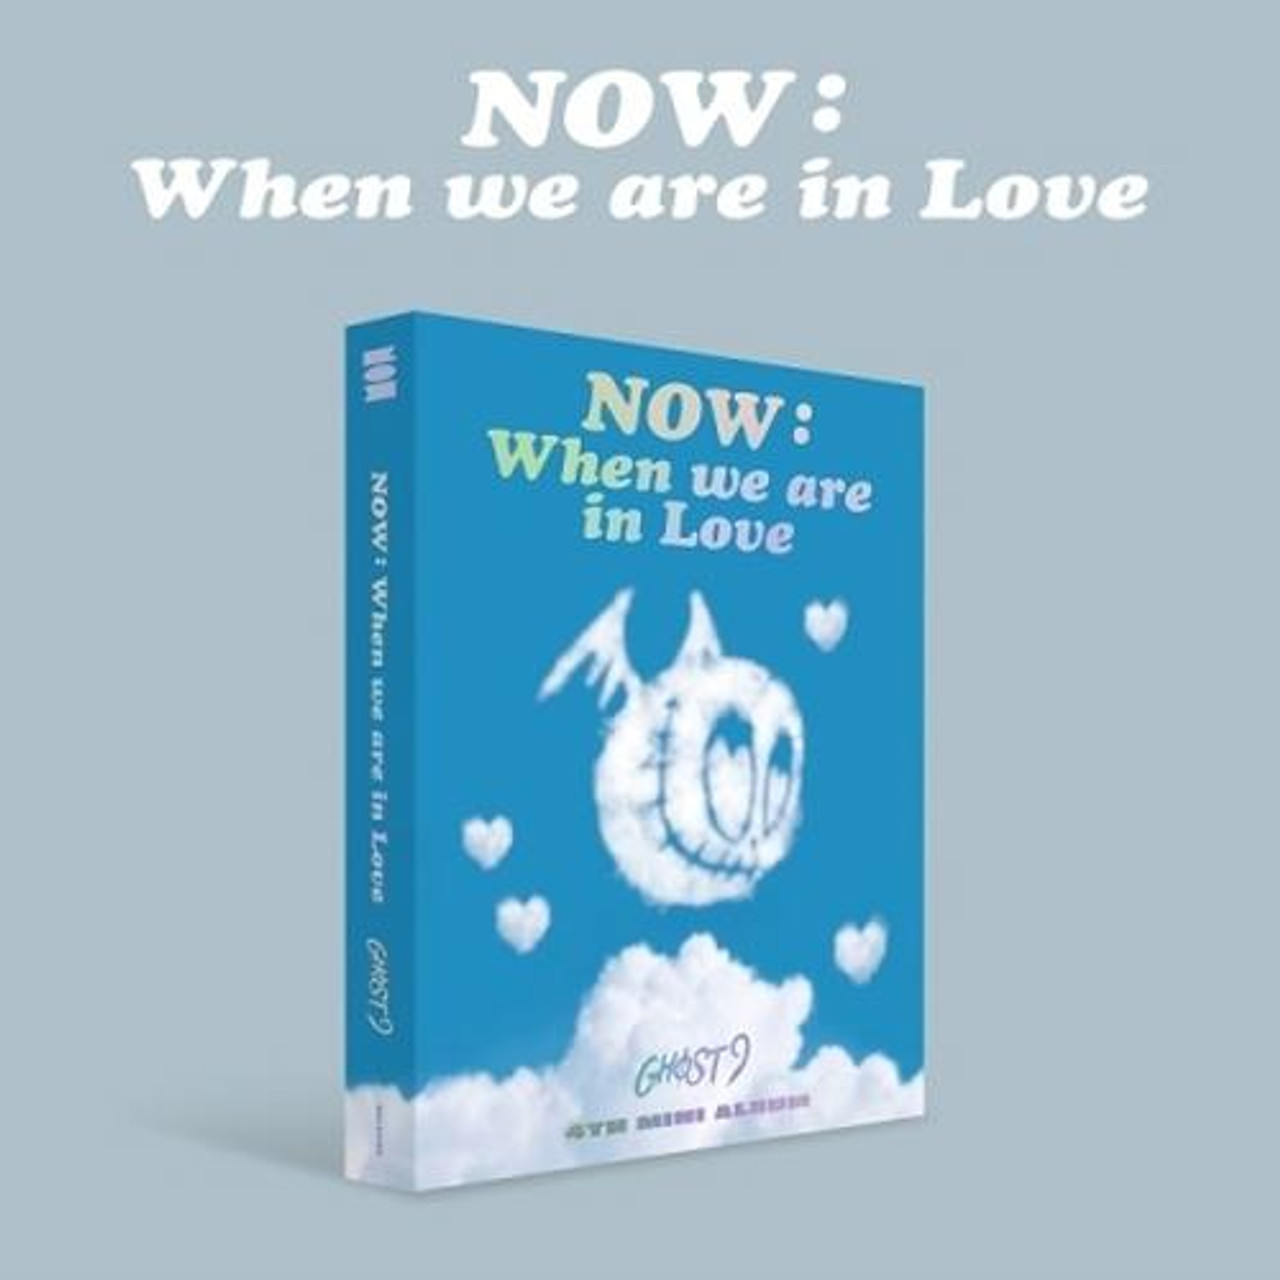 GHOST9 - Vol.2 [NOW : When we are in Love]